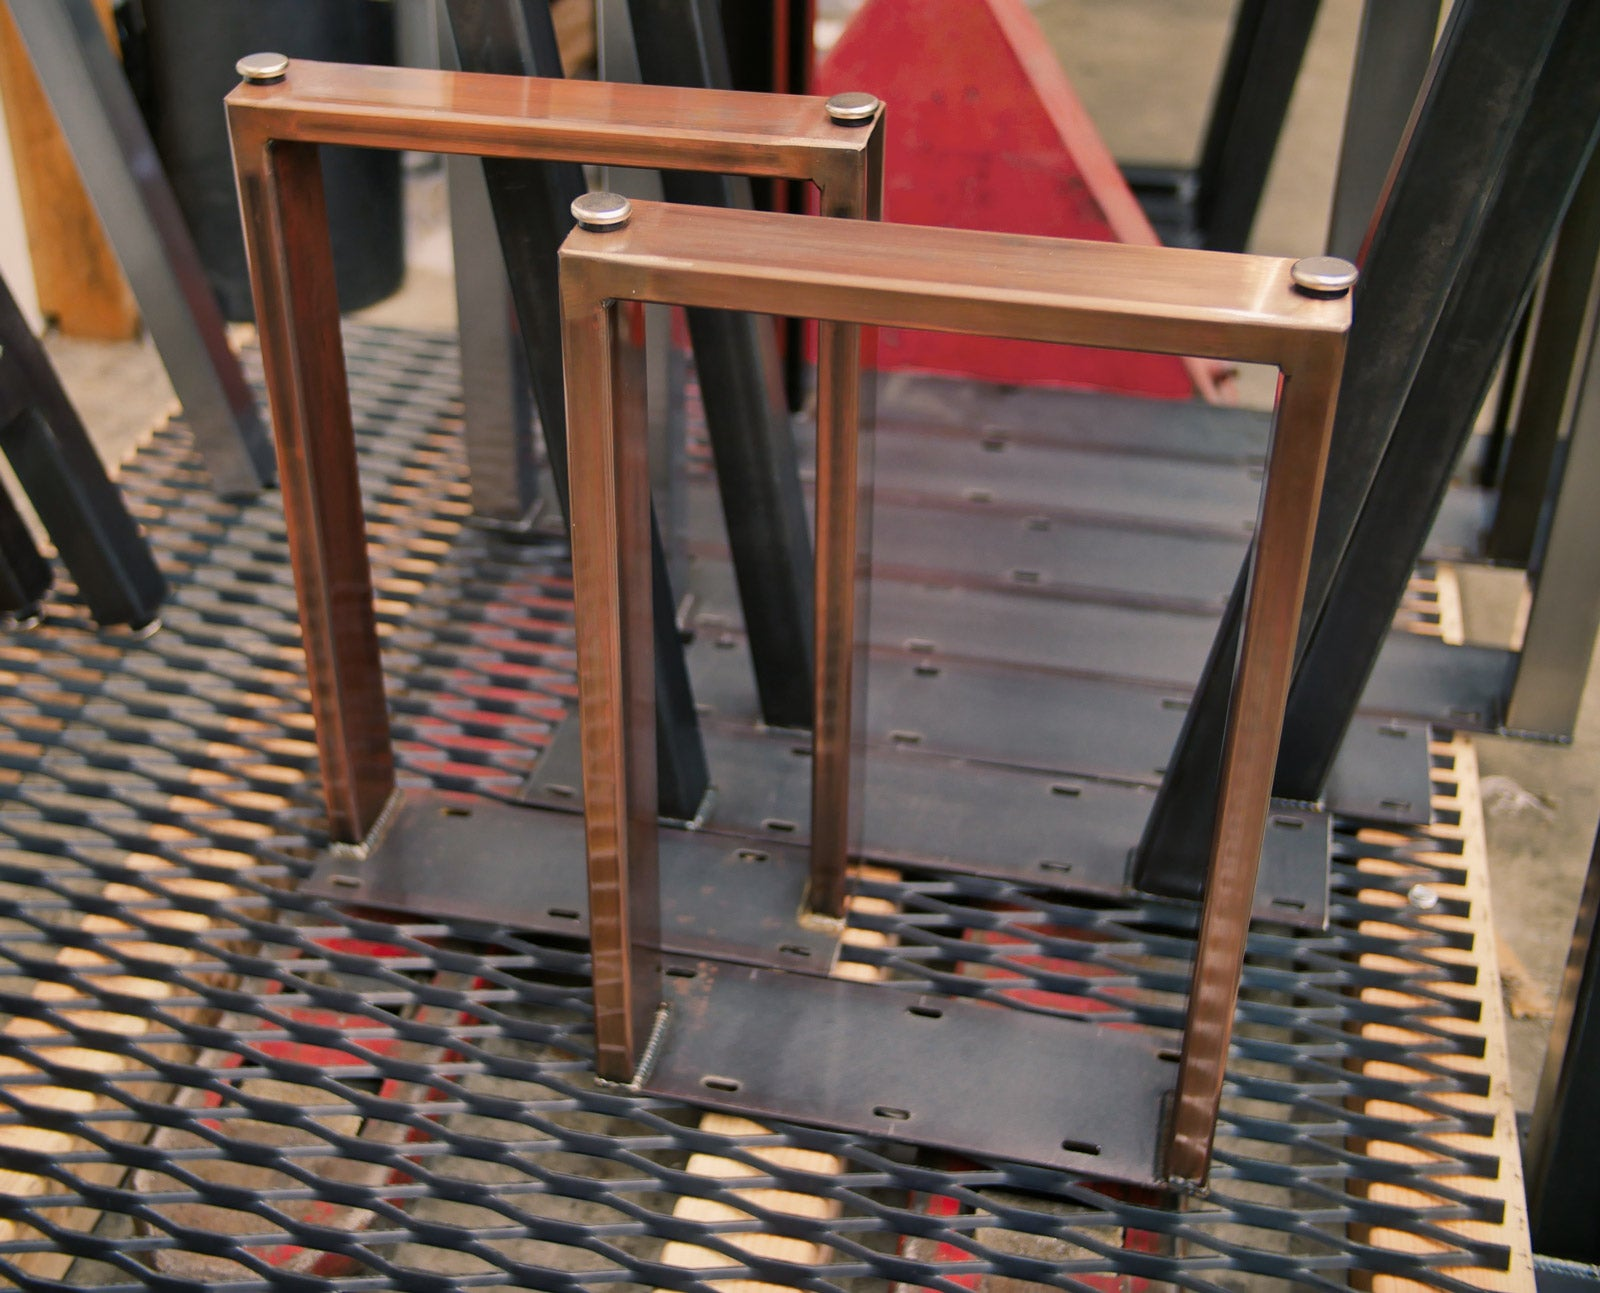 Metal coffee table legs in Antiqued Copper Patina finish